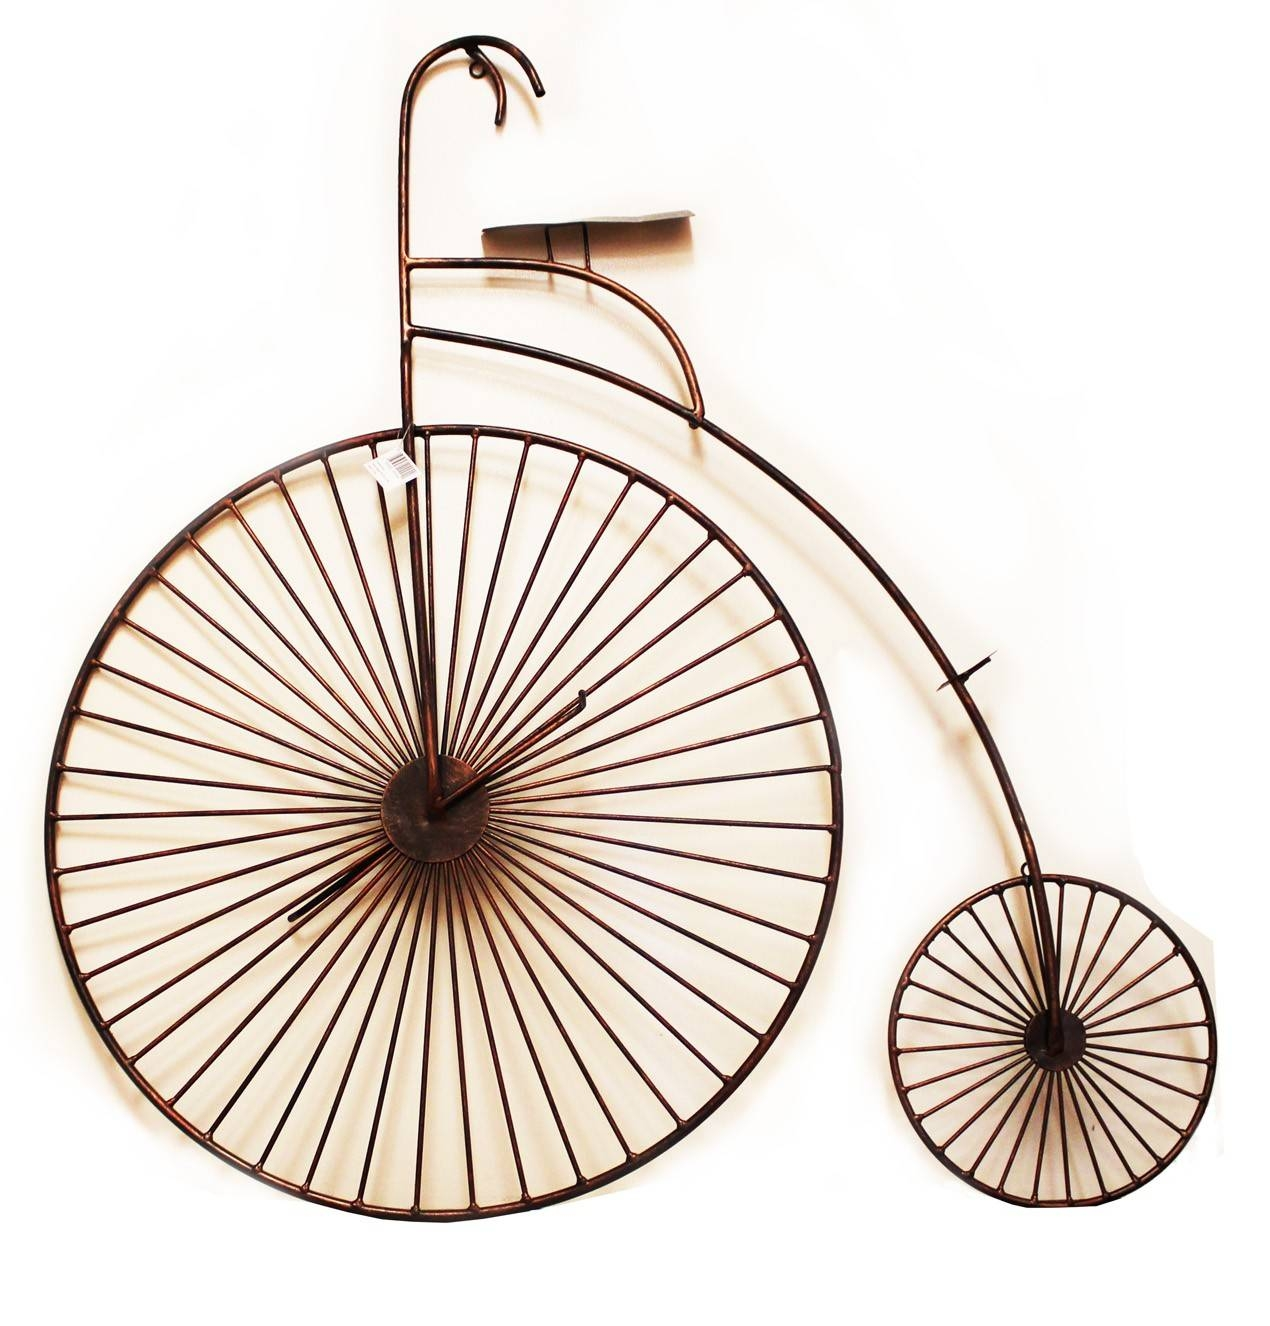 3D Copper Tone Bicycle Wall Art | Unique Metal Wall Art | Wall Decor With Regard To Current Metal Bicycle Wall Art (View 1 of 20)